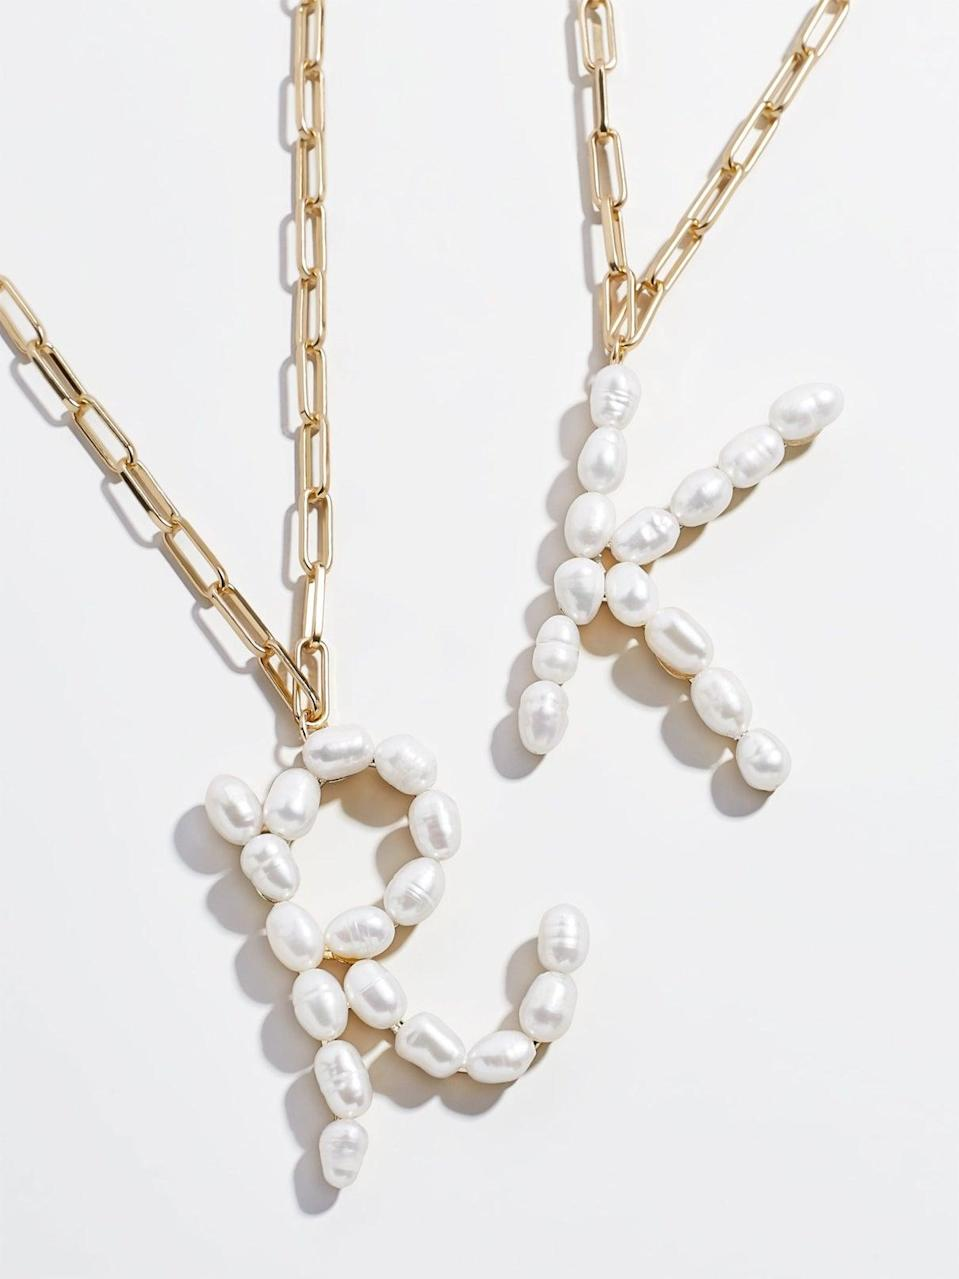 "<br><br><strong>BaubleBar</strong> Blair Hera Pearl Initial Pendant, $, available at <a href=""https://go.skimresources.com/?id=30283X879131&url=https%3A%2F%2Fwww.baublebar.com%2Fproduct%2F50230-blair-pearl-initial-pendant"" rel=""nofollow noopener"" target=""_blank"" data-ylk=""slk:BaubleBar"" class=""link rapid-noclick-resp"">BaubleBar</a>"